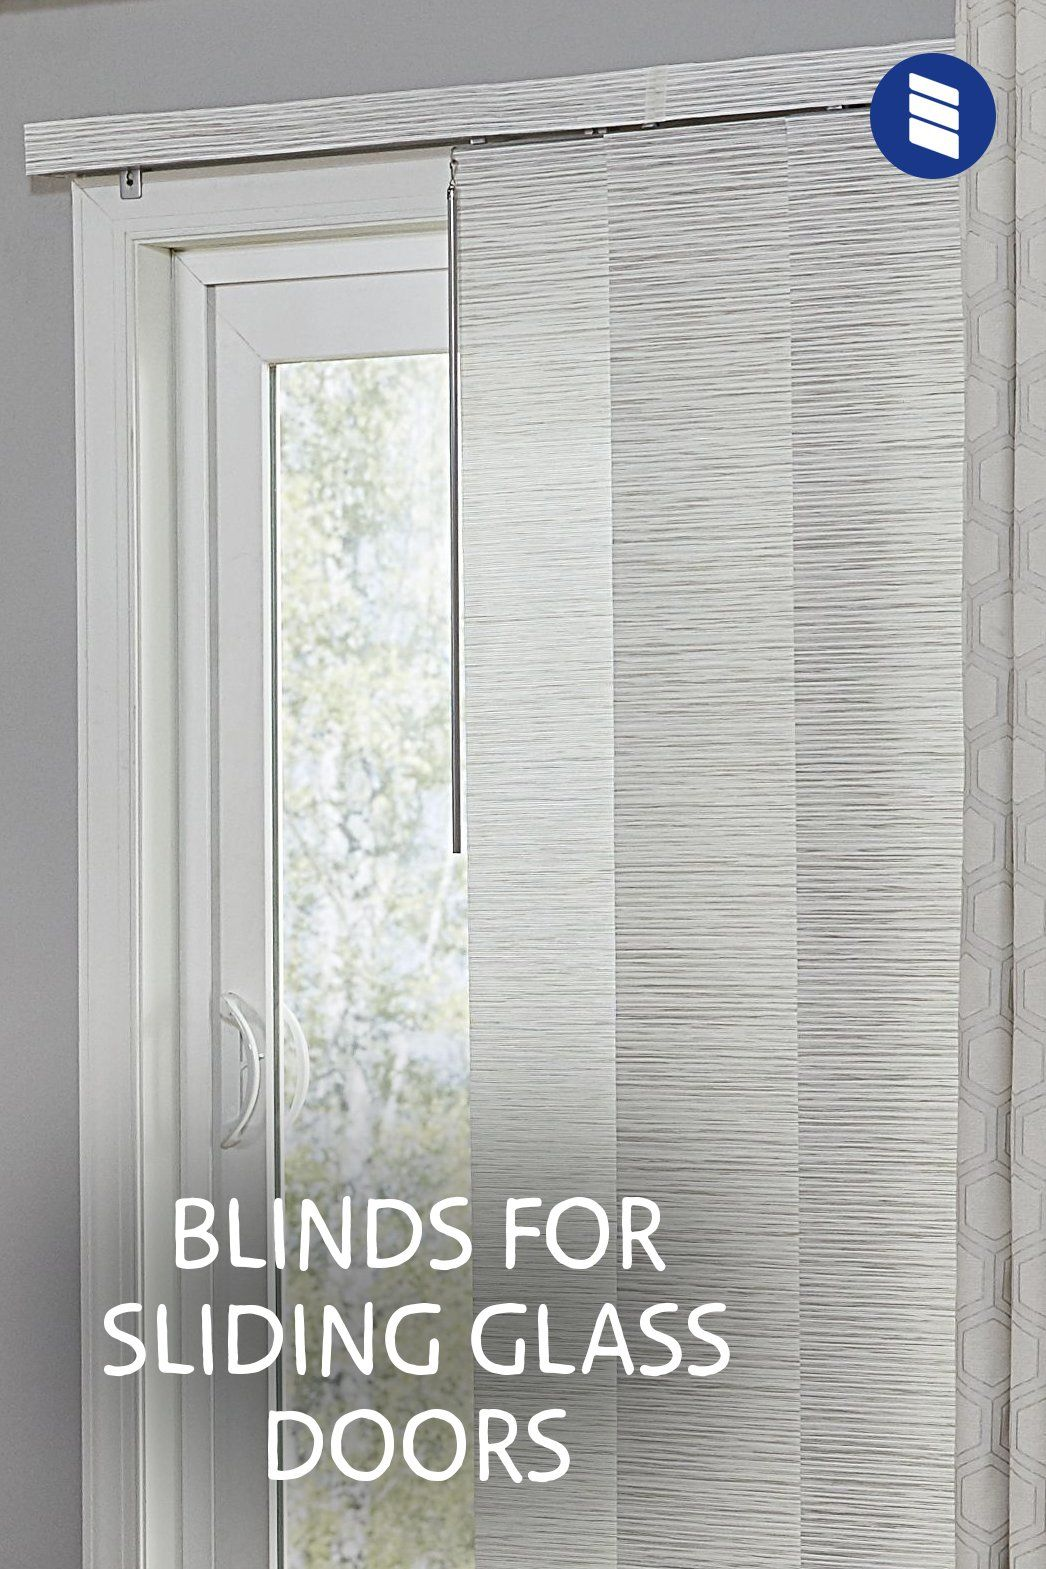 The Best Vertical Blinds Alternatives For Sliding Glass Doors Blinds Com In 2020 Vertical Blinds Alternative Sliding Patio Doors Window Treatment Sliding Glass Door Window Treatments